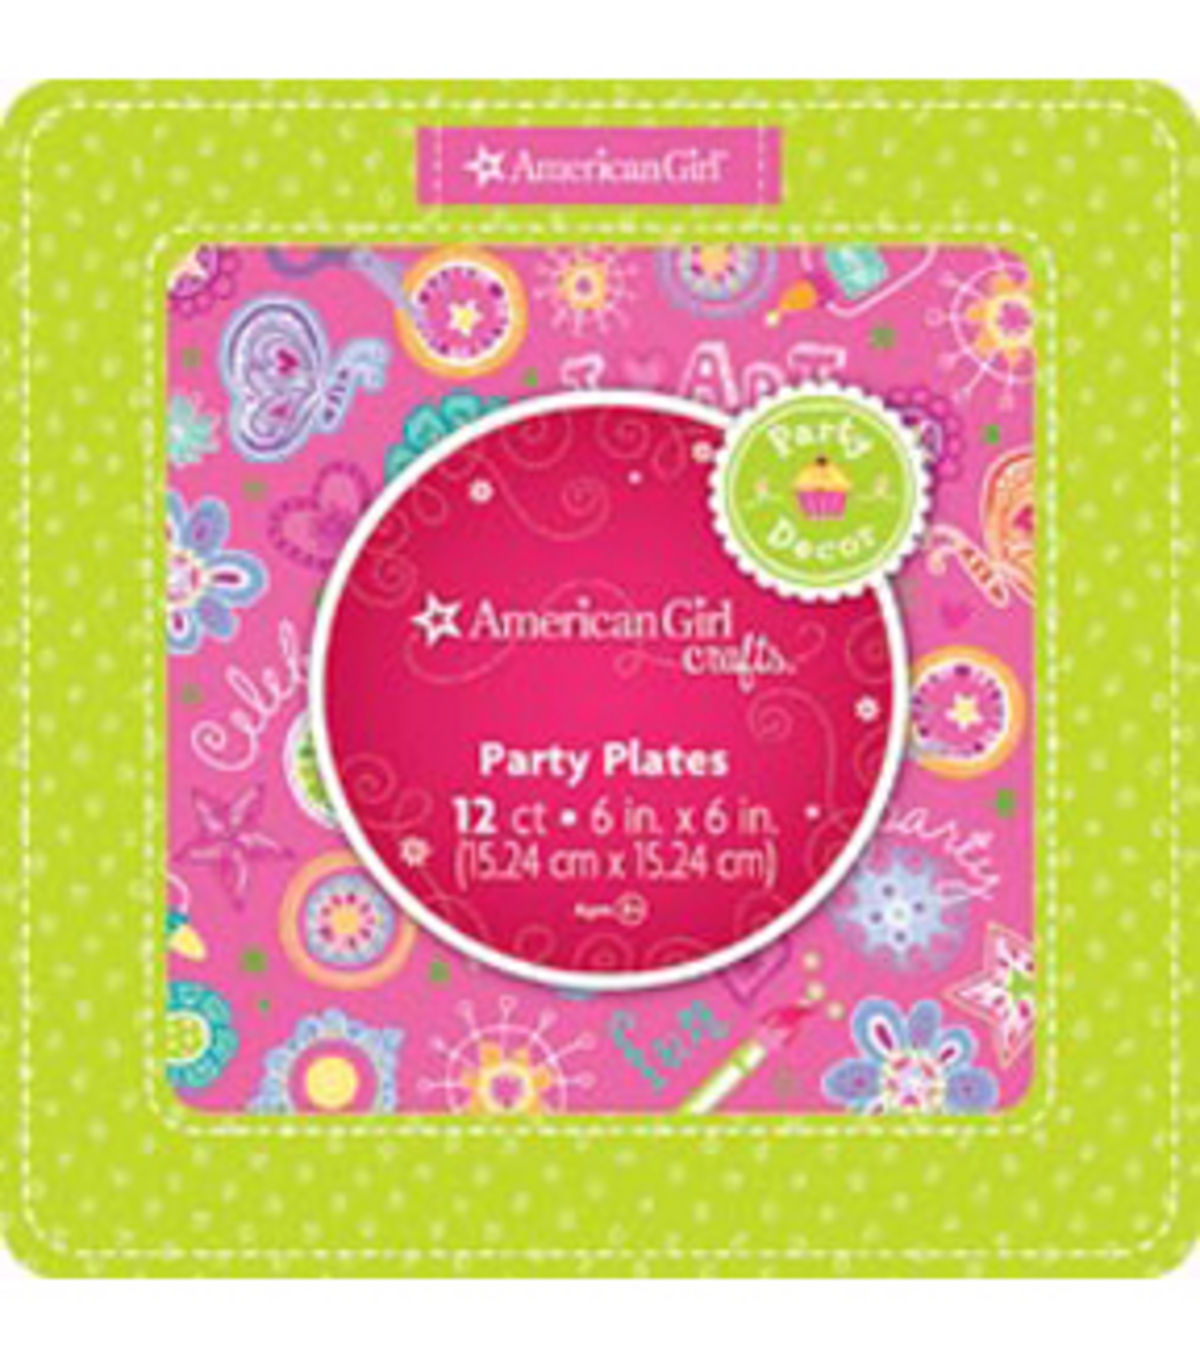 American Girl Party Plates